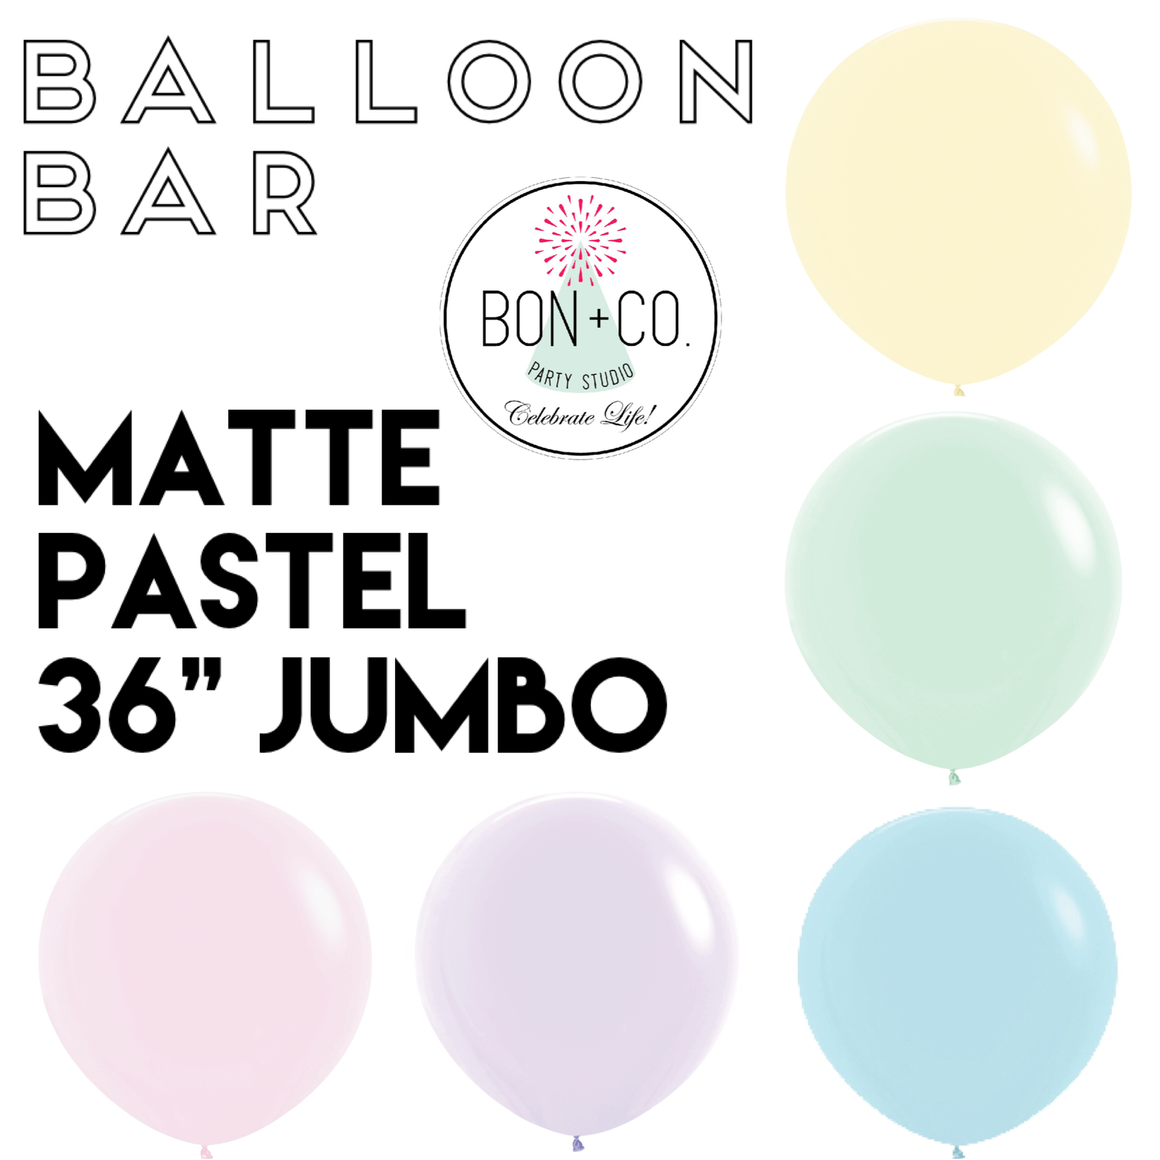 "BALLOON BAR - MATTE PASTELS 36"" JUMBO"